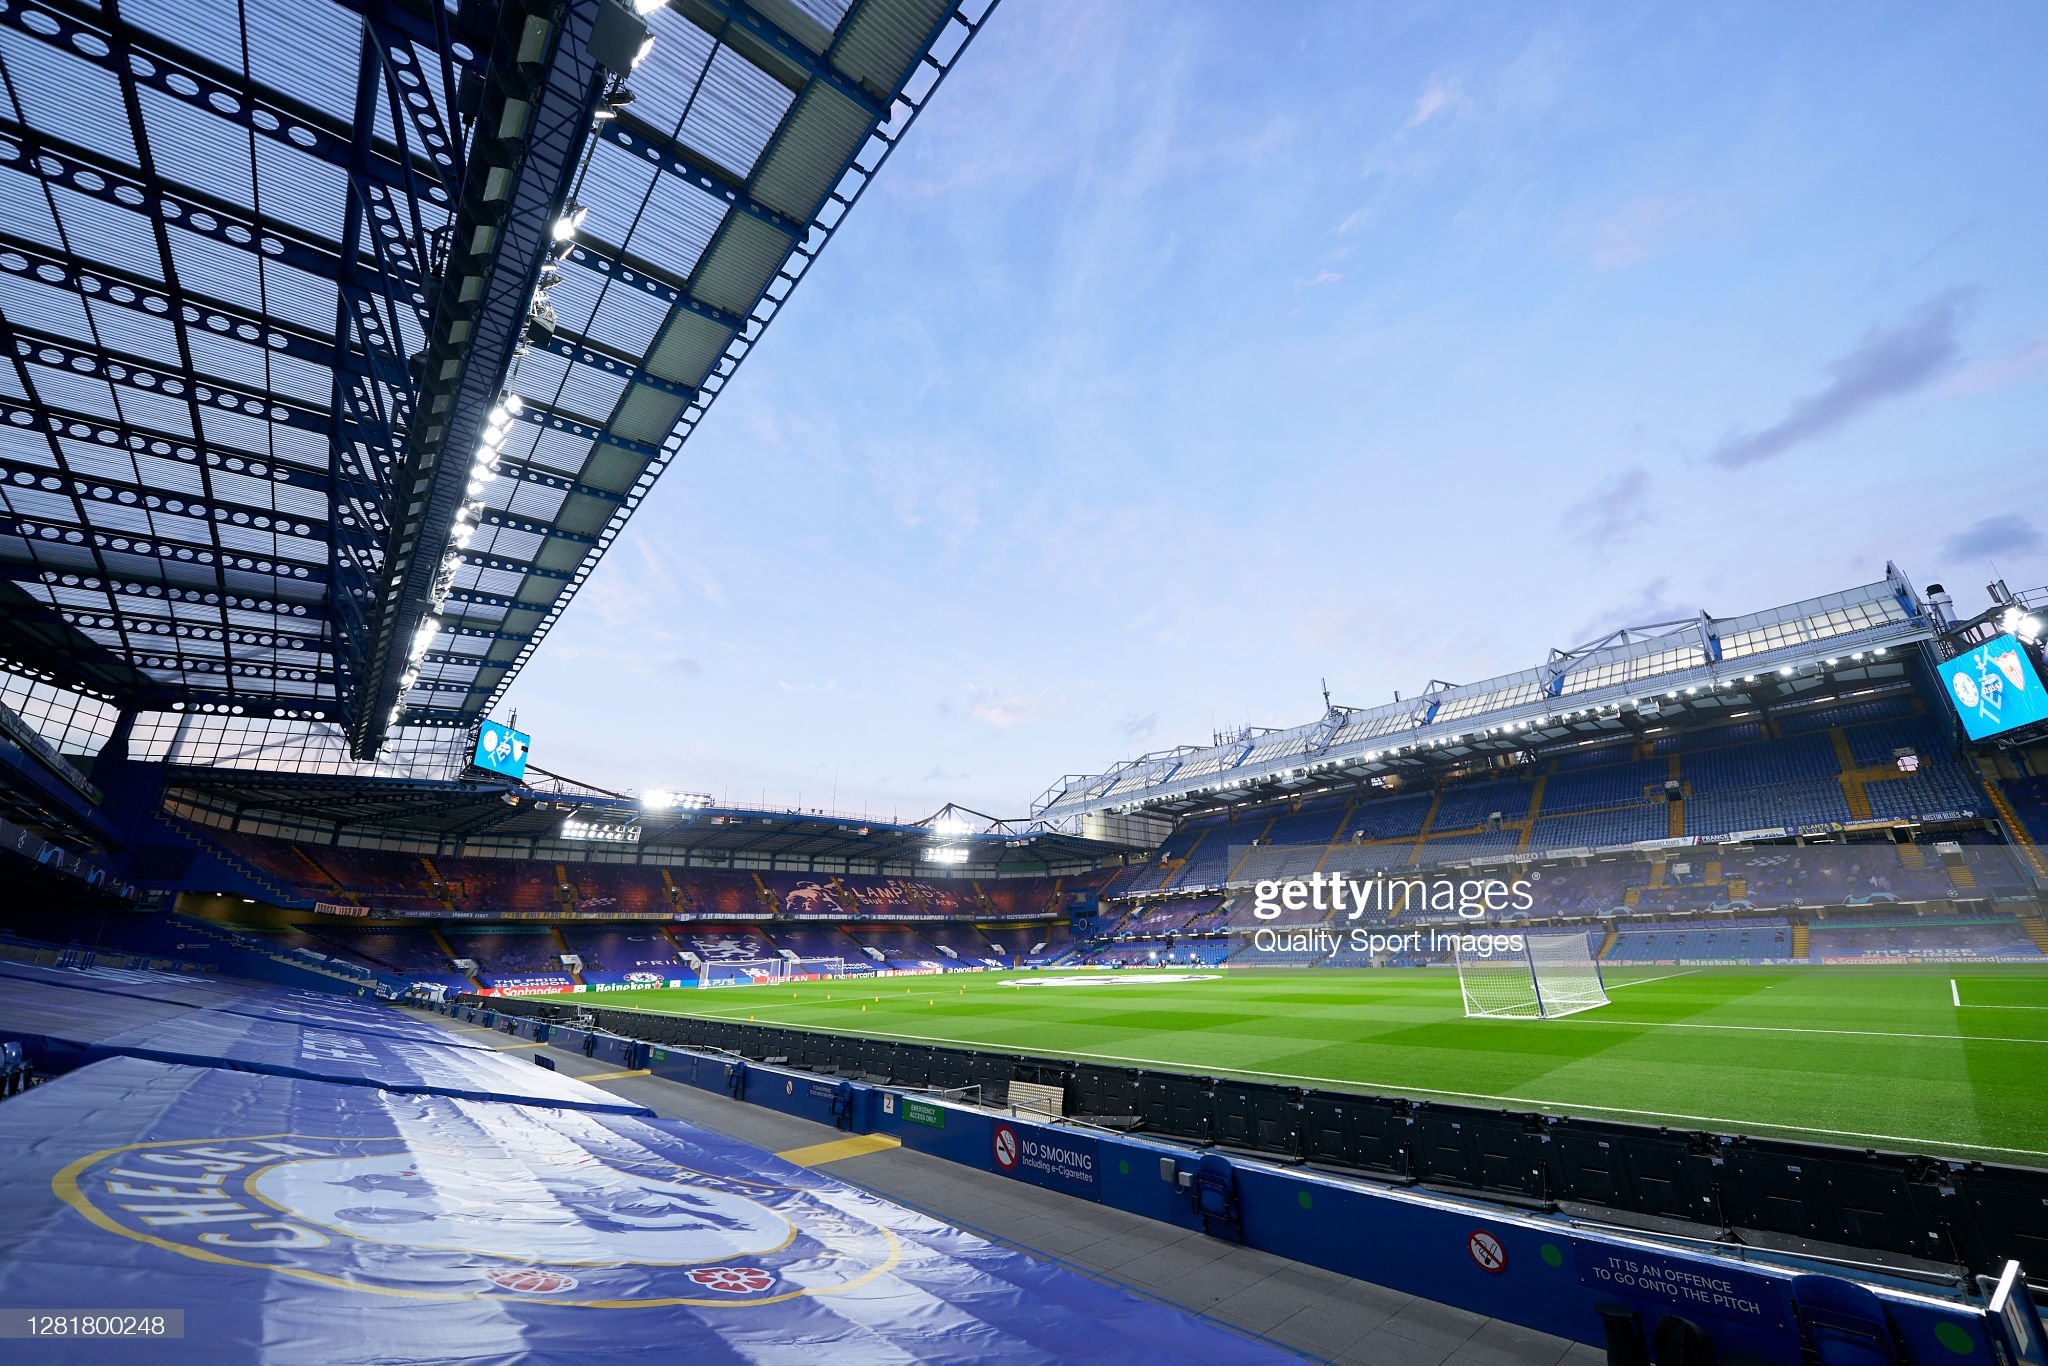 Chelsea vs Rennes Preview, prediction and odds